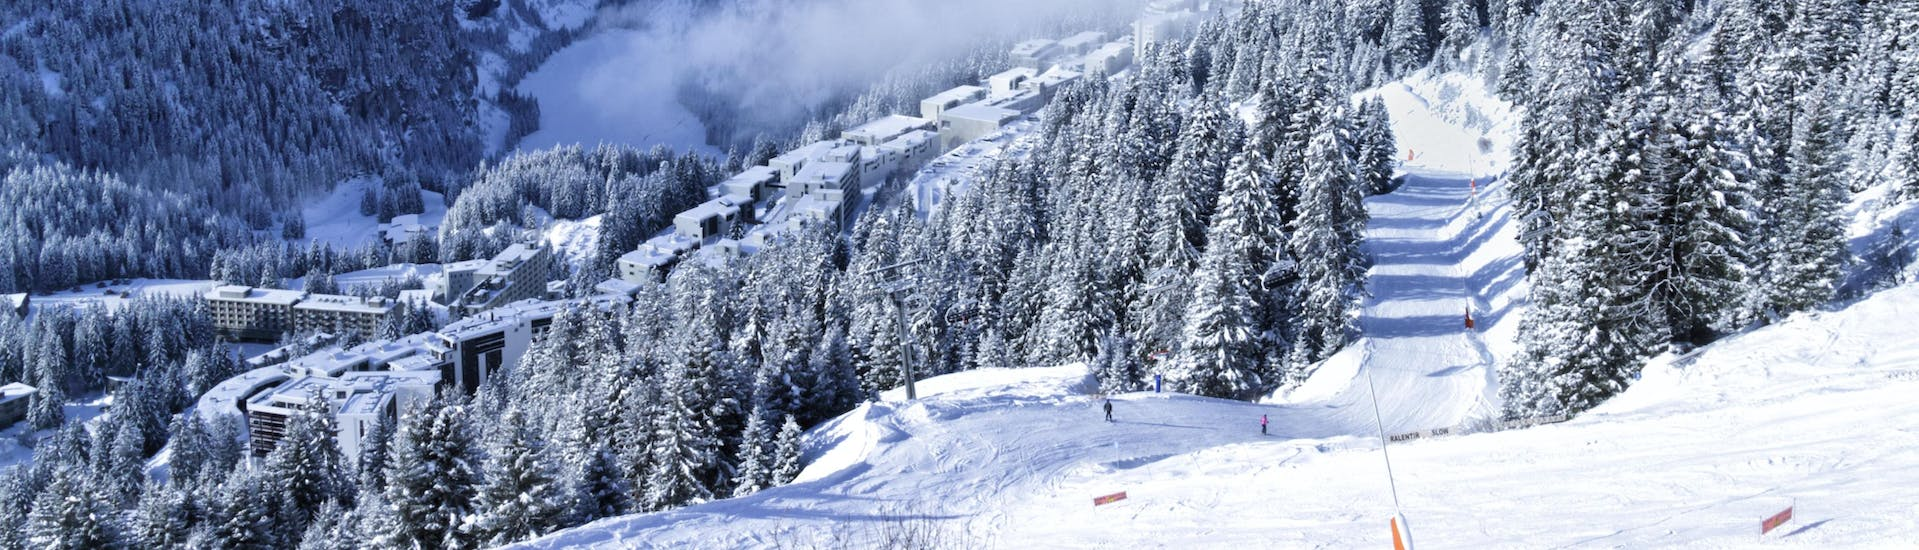 An image of the white winter landscape encountered in the ski resort of Flaine, where local ski schools take their students for their ski lessons.